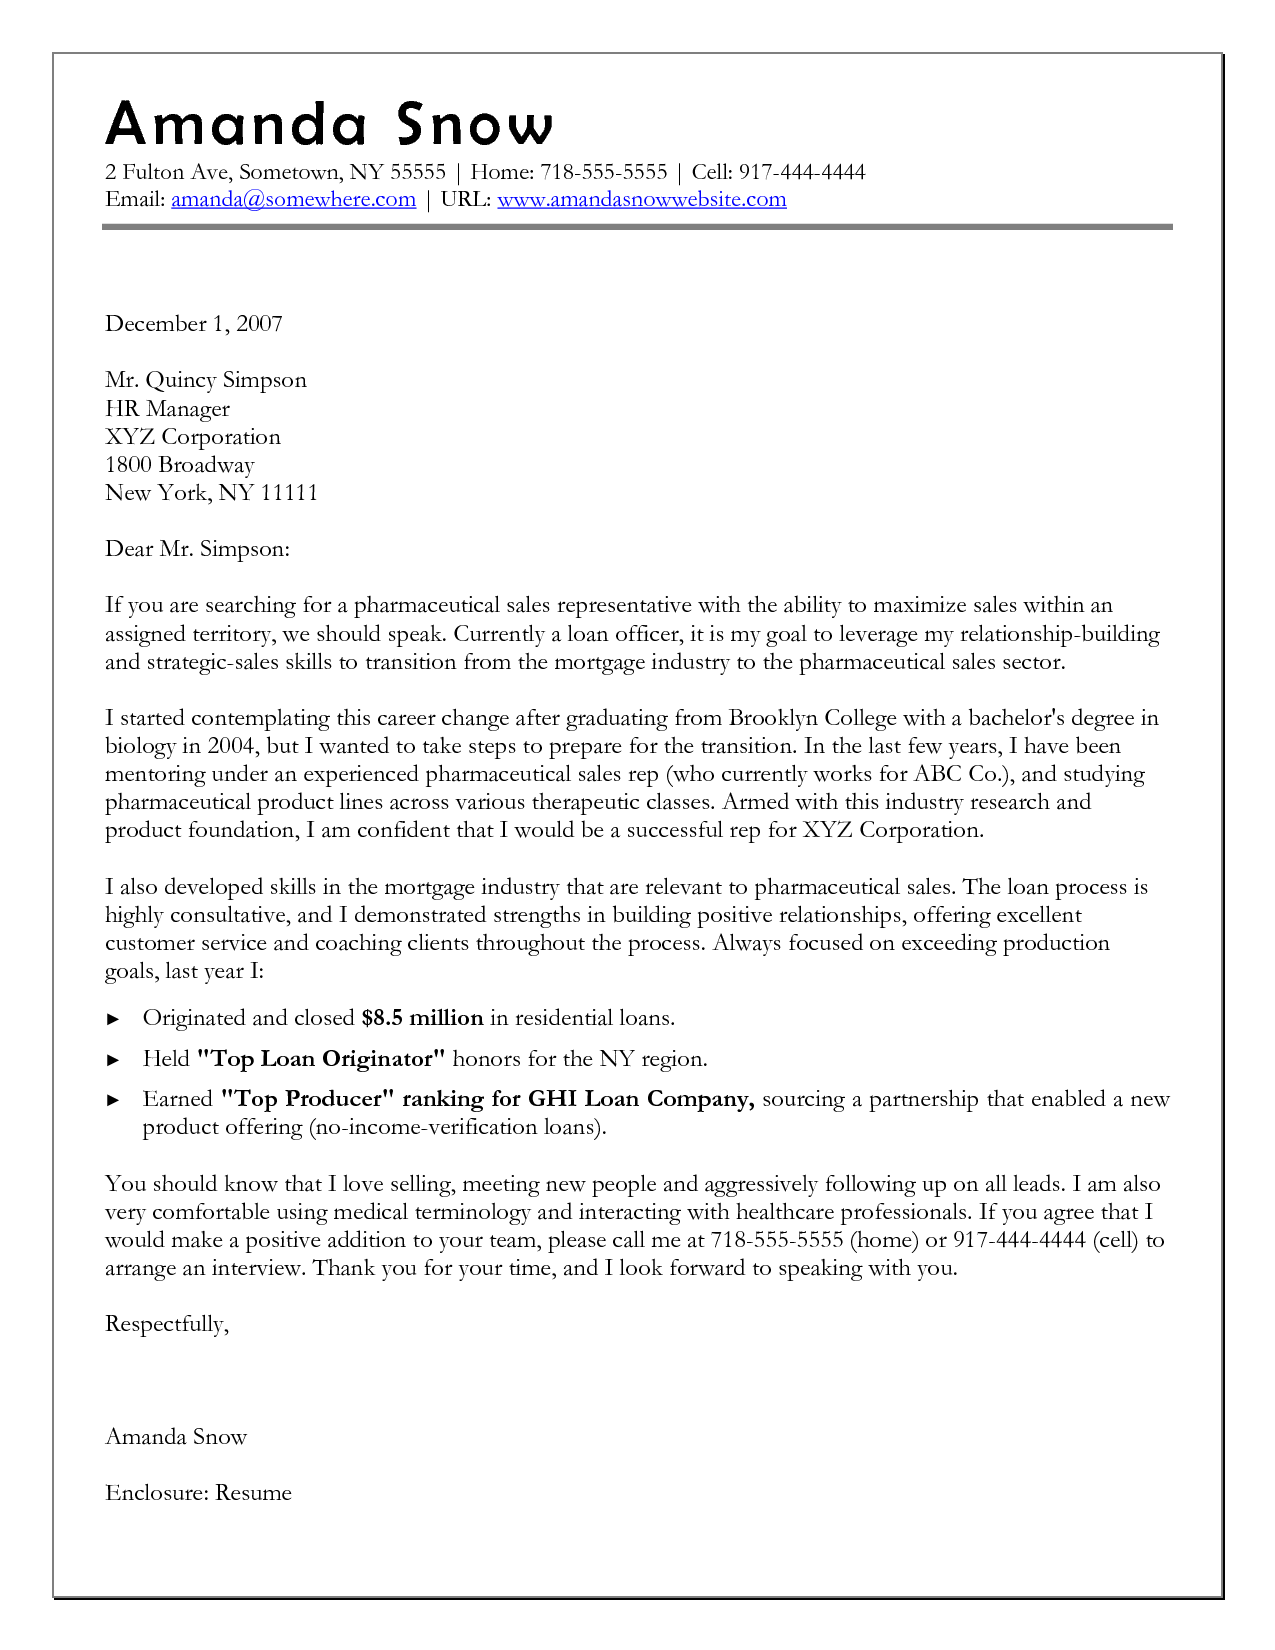 change of career cover letter examples 10 sample of career change cover letter